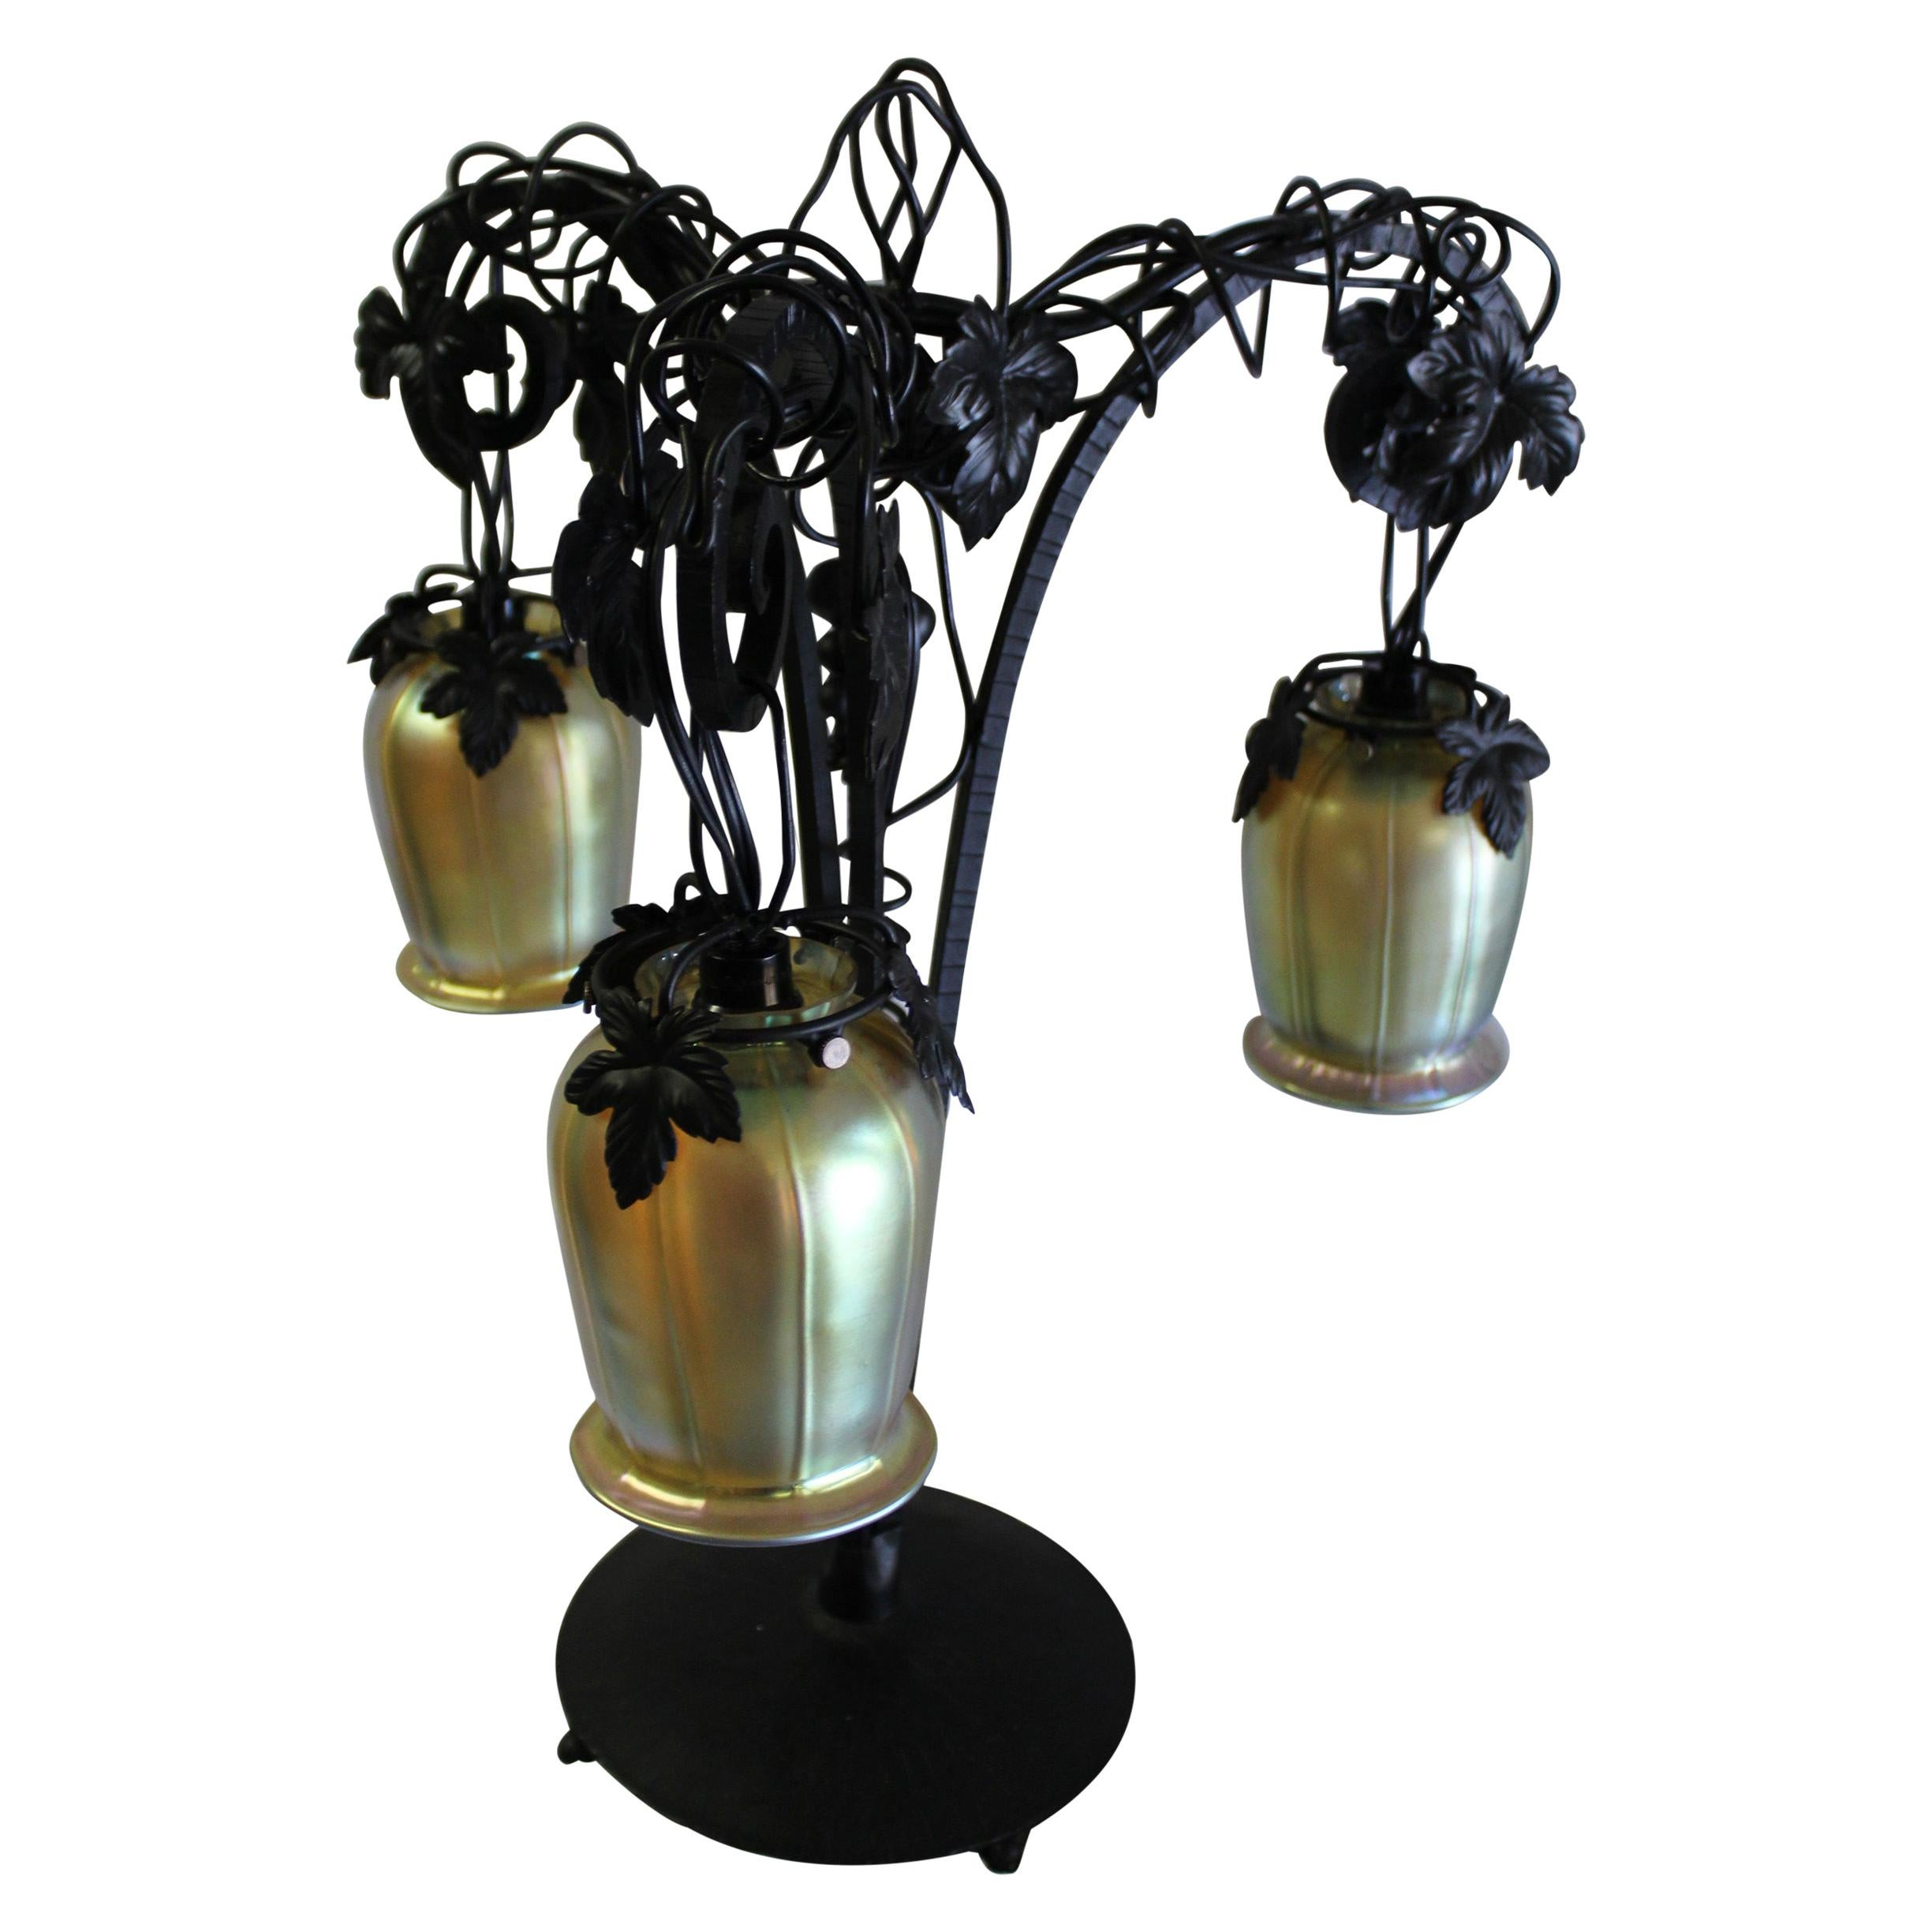 Art Deco Table Lamp, Iron with 3 Hanging Glass Shades